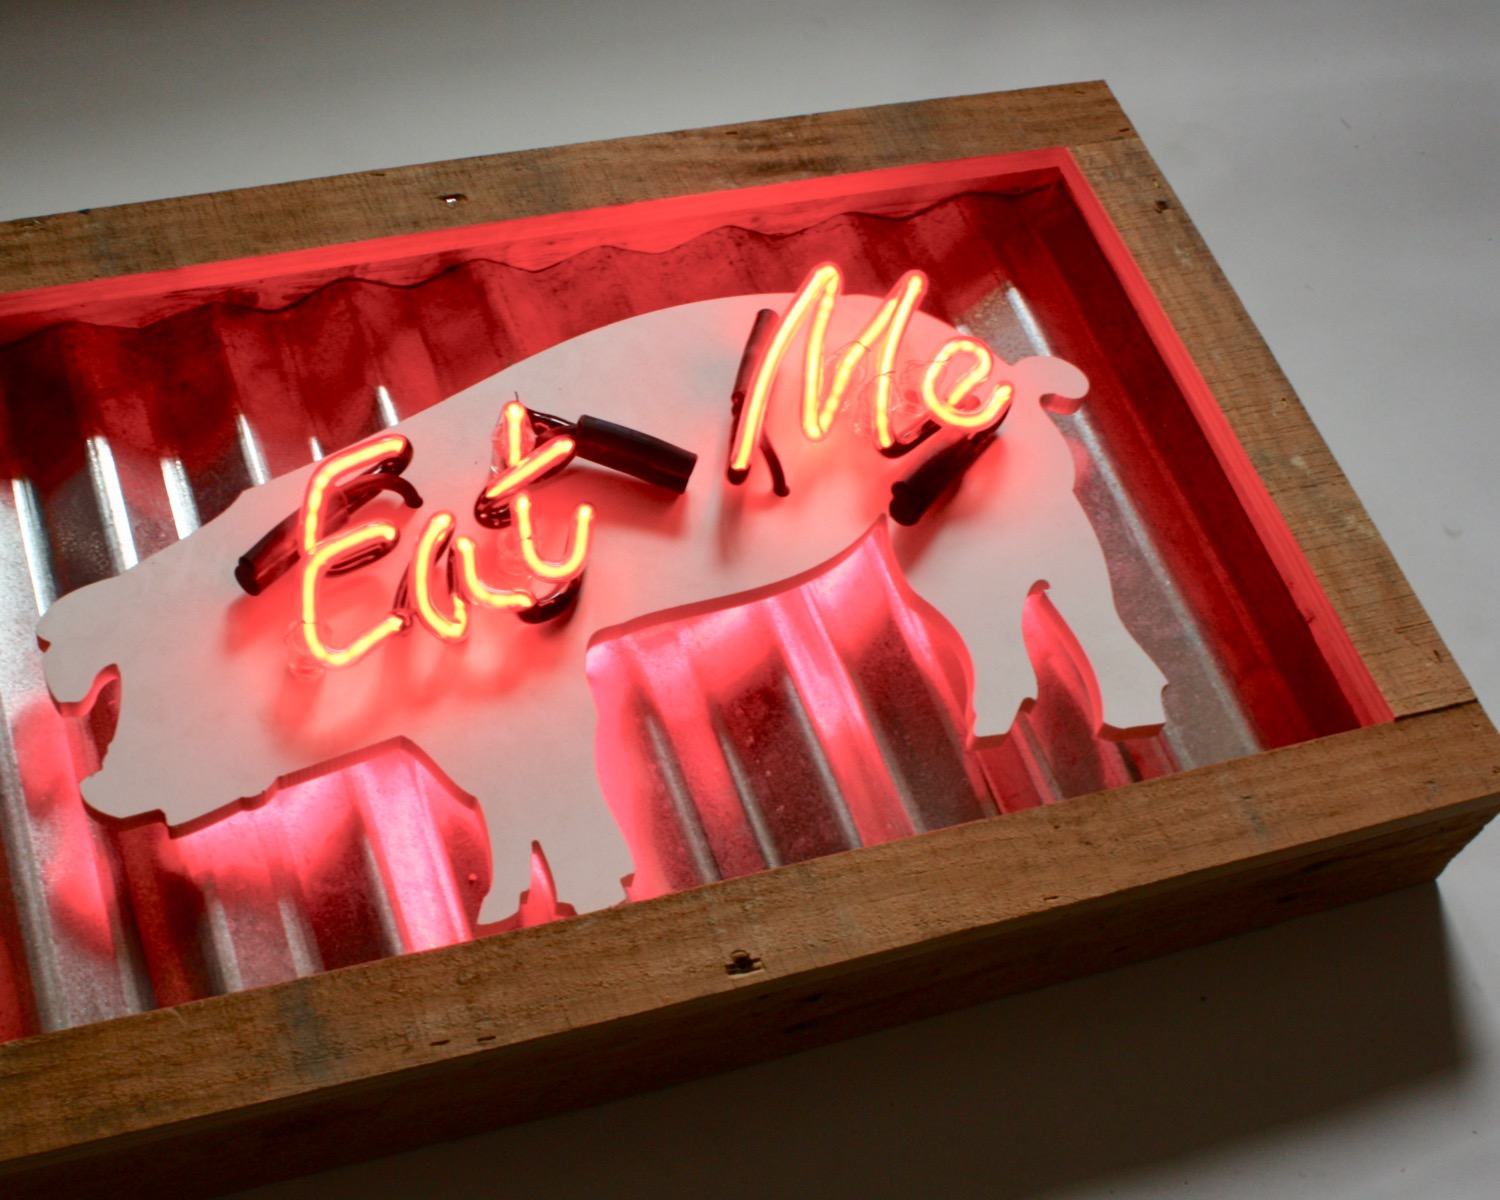 So You Want a Neon Sign? About Time! - Here's what you need to think about: